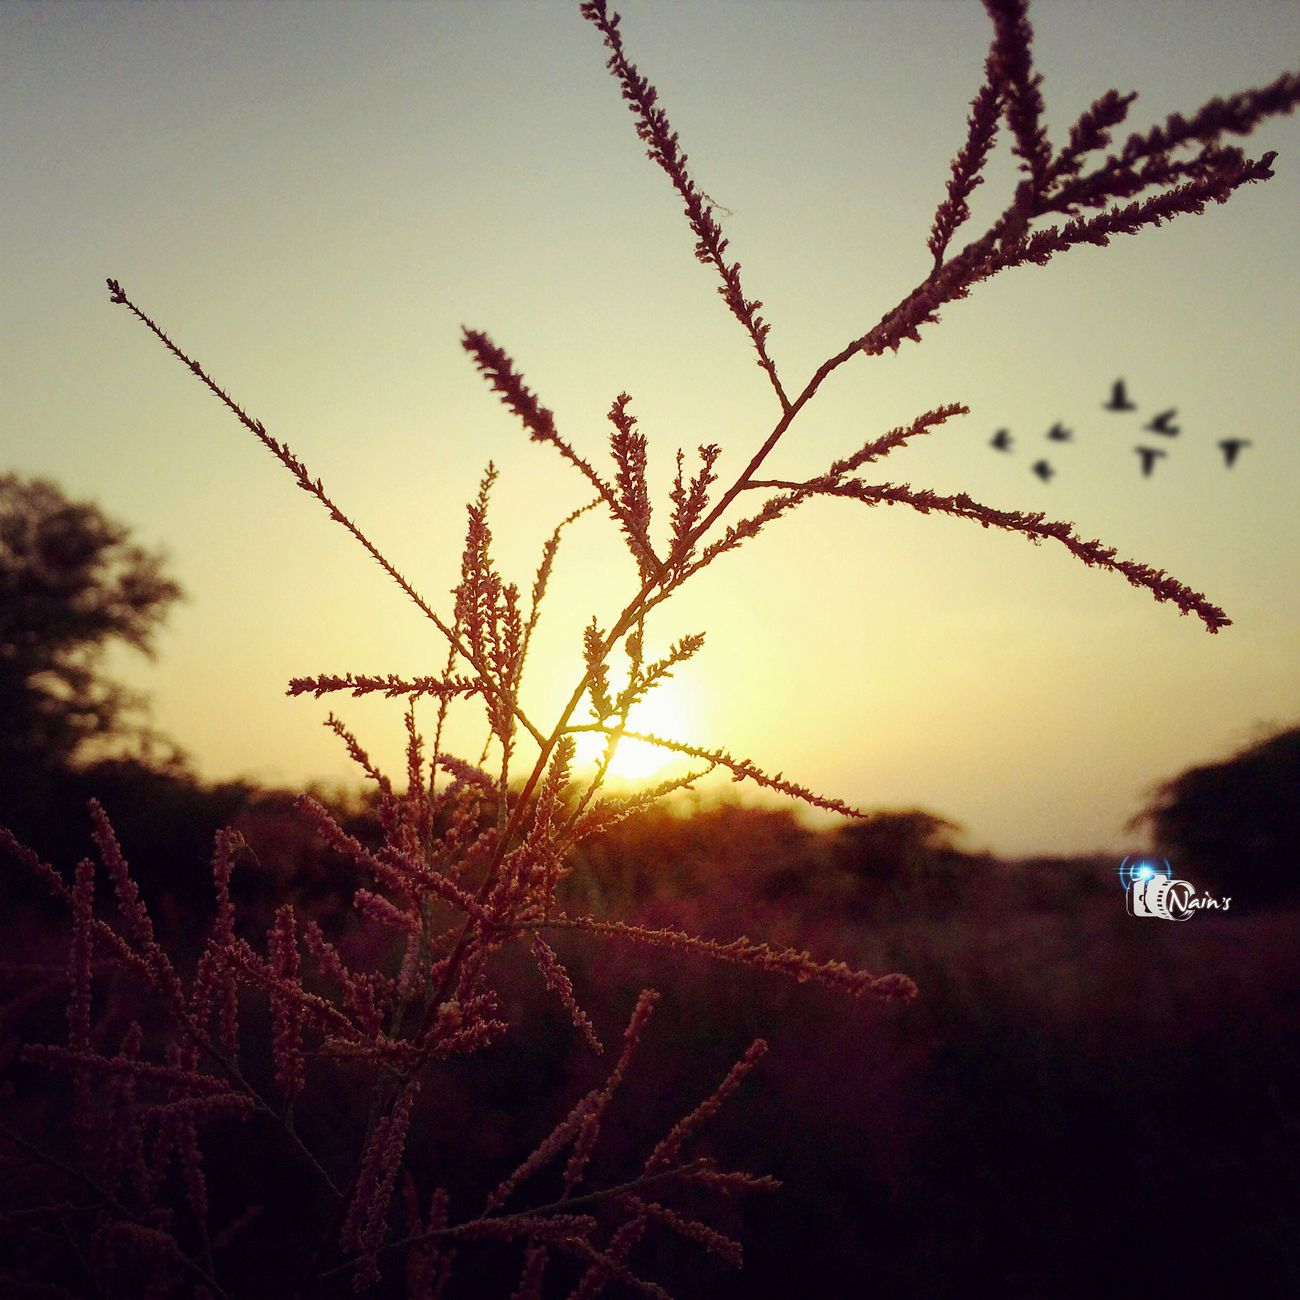 Sunset Detail.. Growth Nature Sunset Plant Beauty In Nature No People Close-up Flower Tree Outdoors Fragility Sky Freshness Day Floral Pakistan New River Riverside Red Gold Amazing